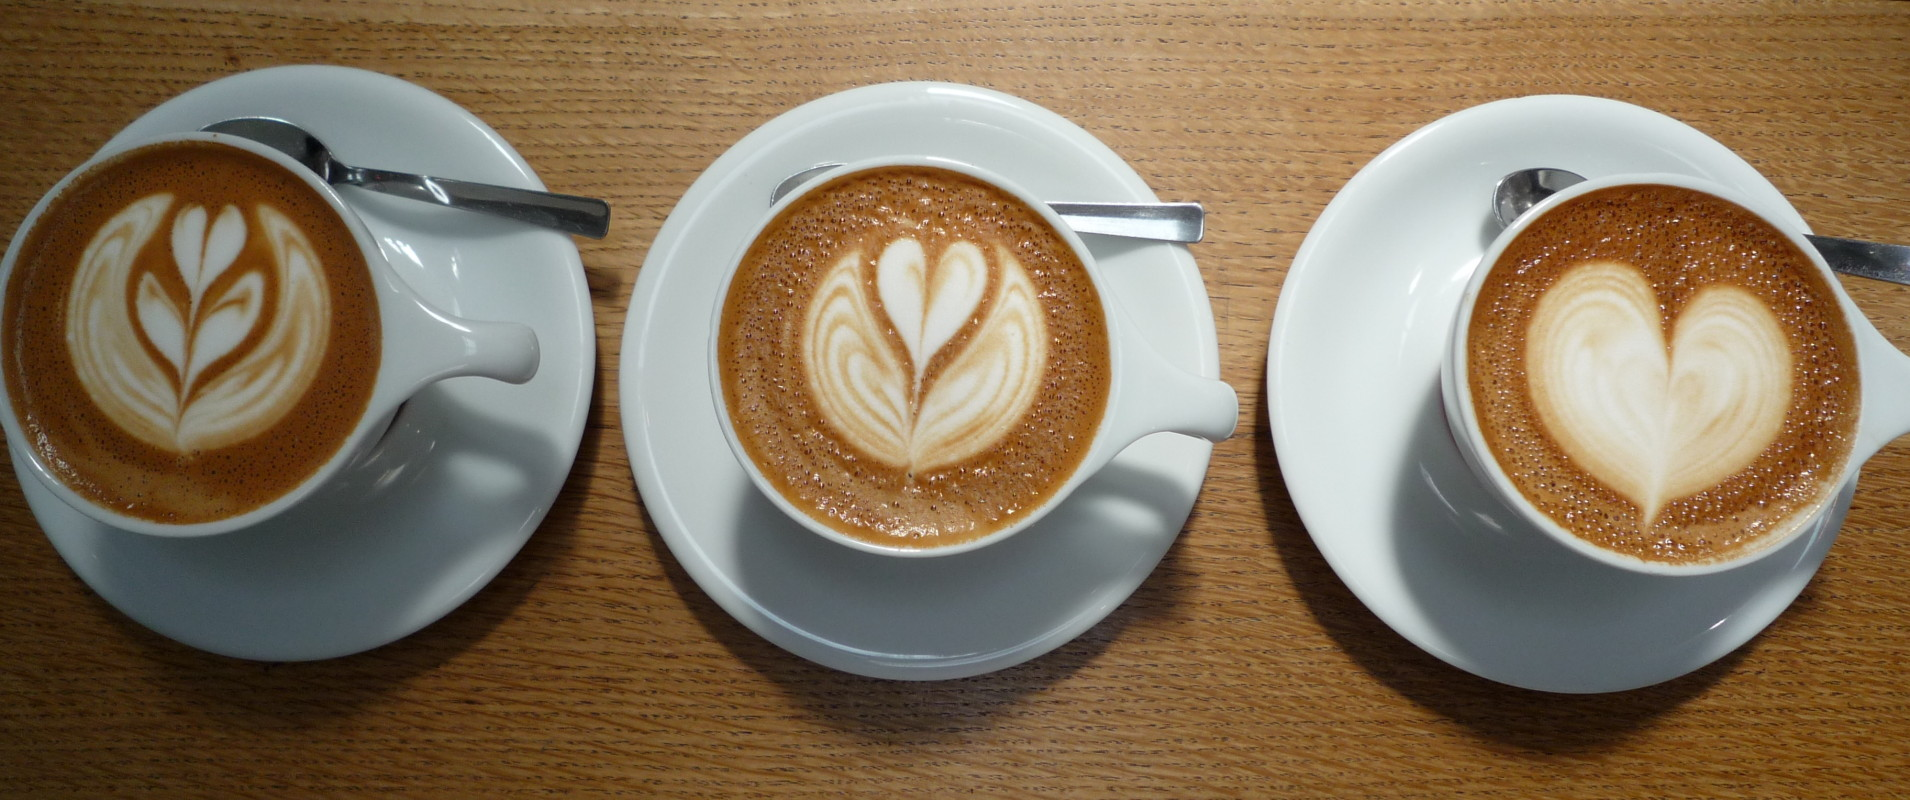 This New Machine Turns Your Selfie Into Latte Art Pursuitist